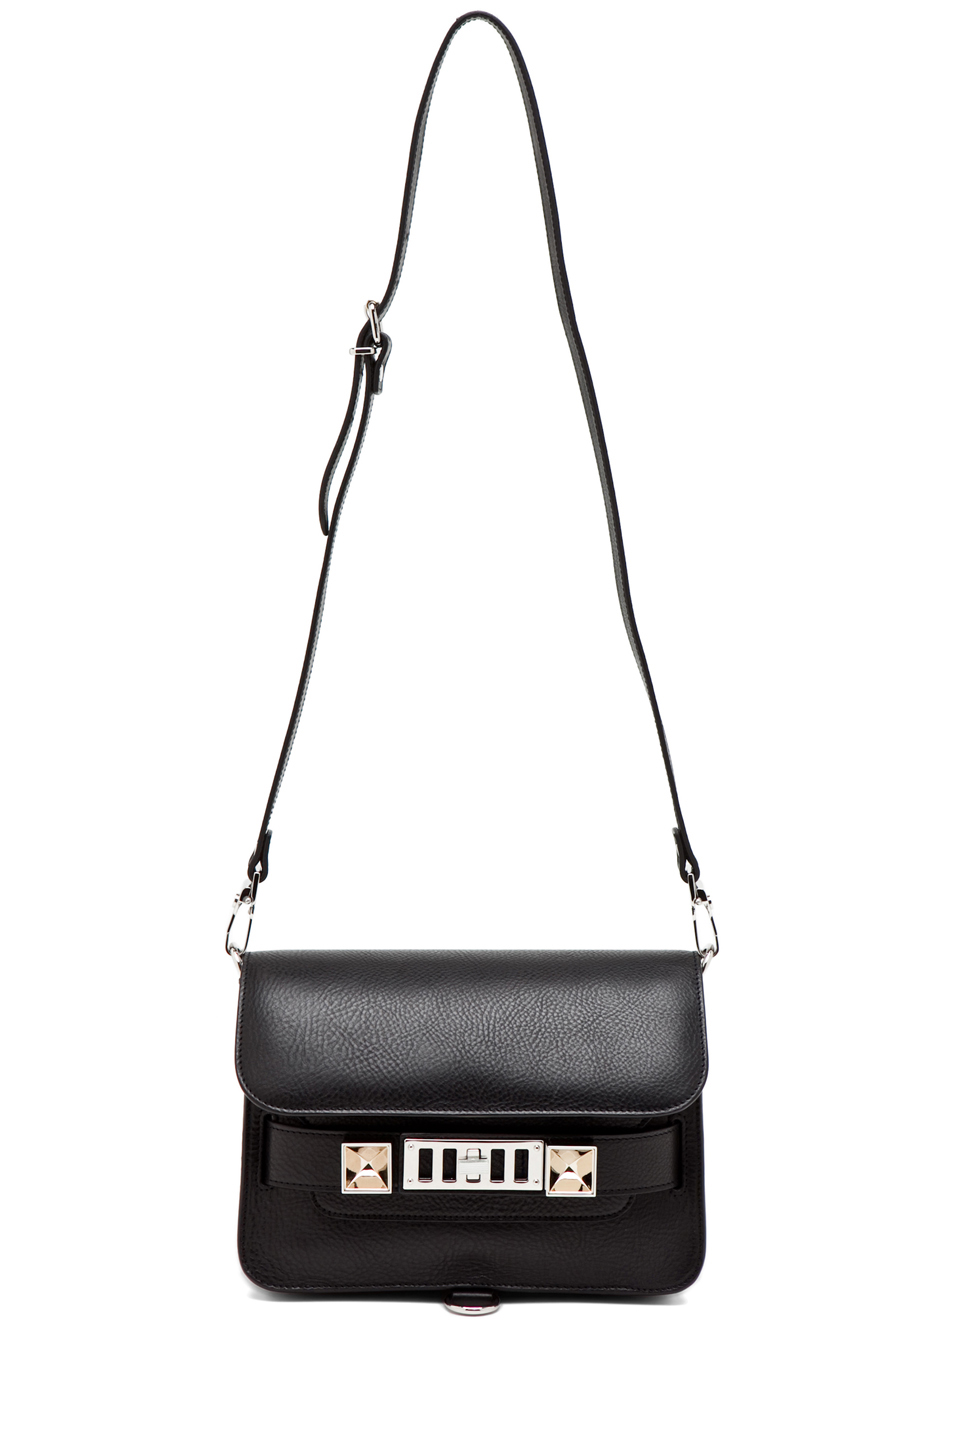 Proenza Schouler | Mini PS11 Classic Smooth Leather Shoulder Bag in Black